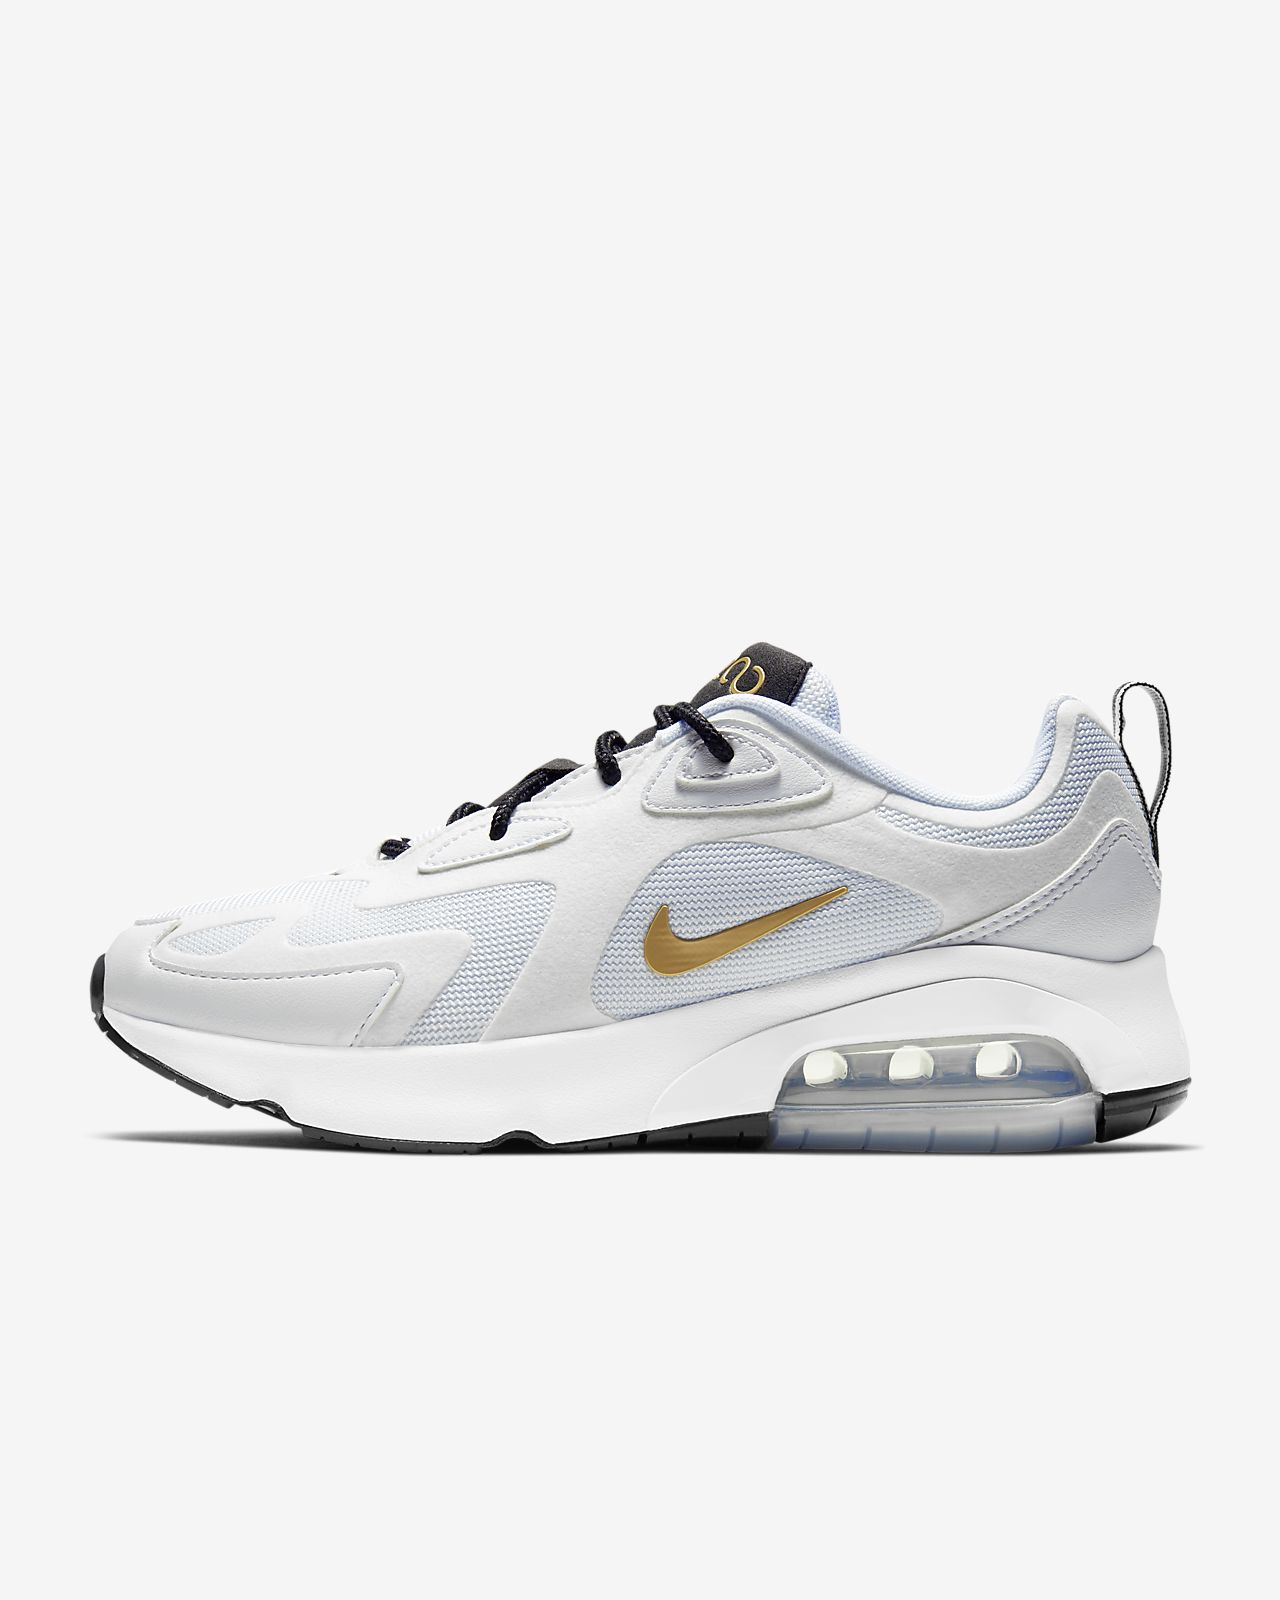 Nike WMNS Air Max 200 Damen Sneaker weiß gold AT6175 102